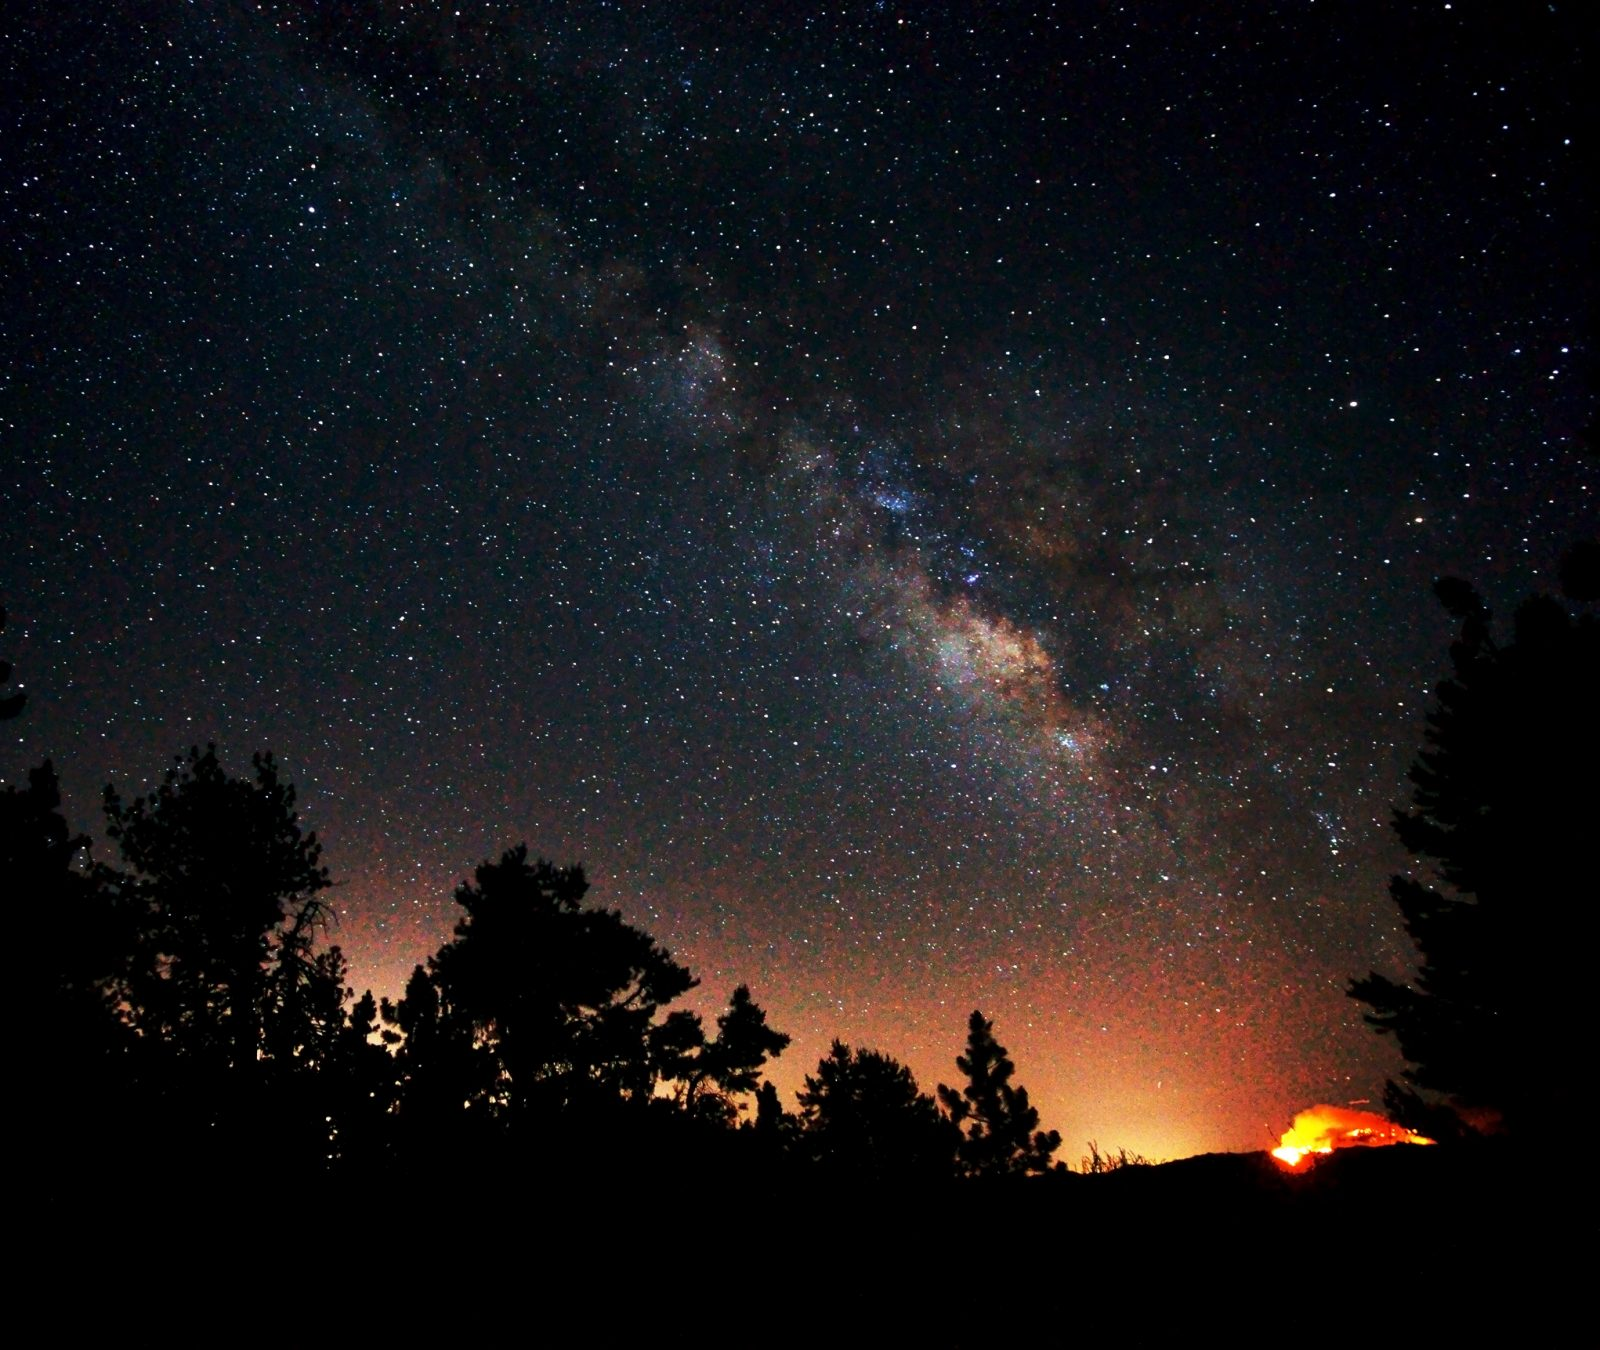 Wildfire Milky Way